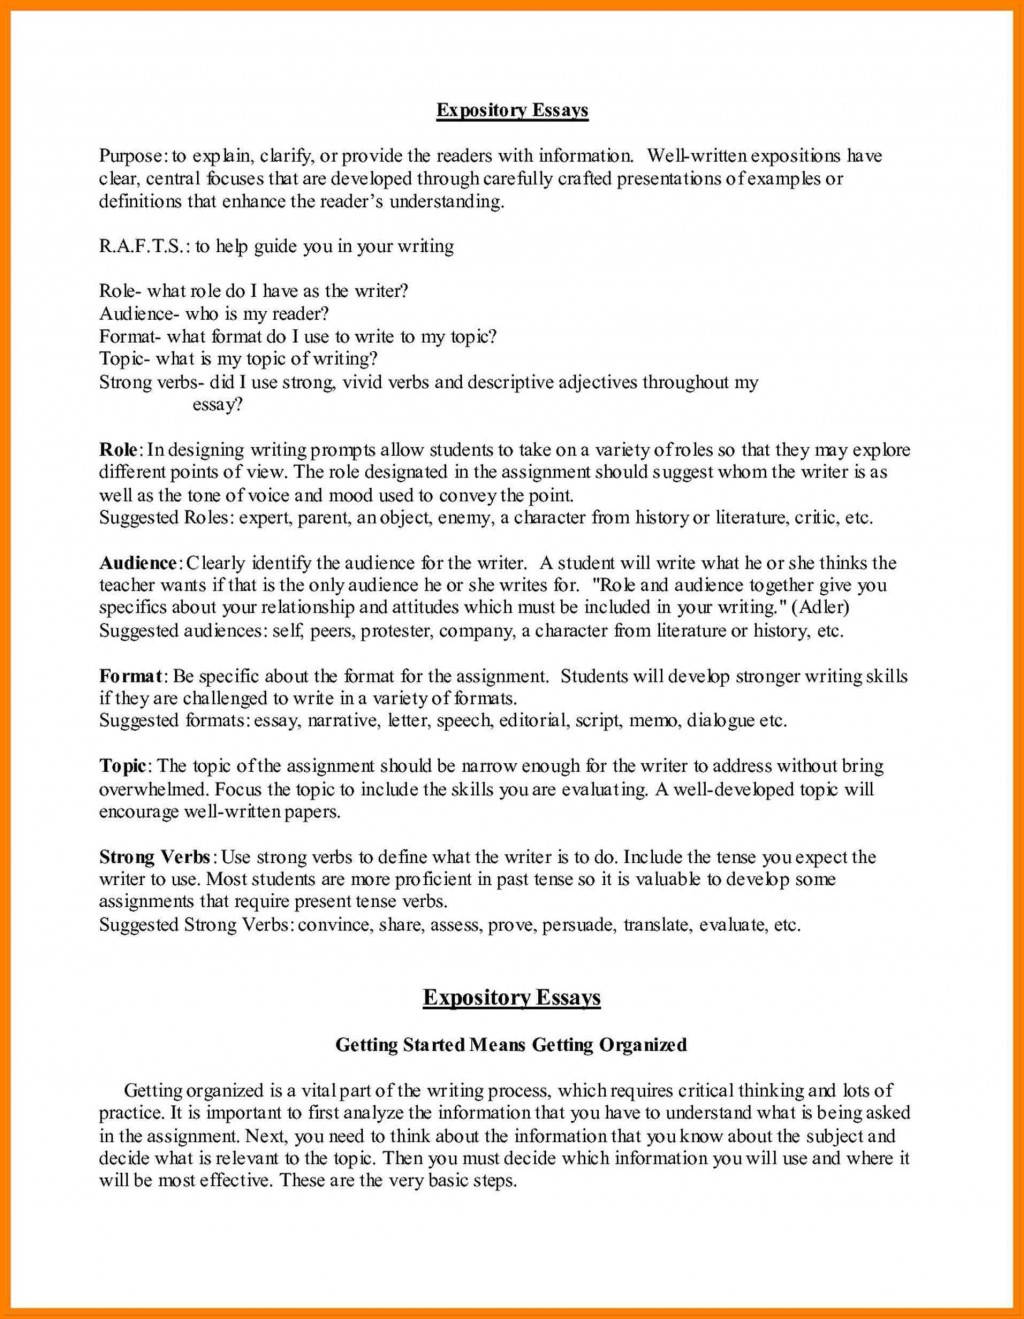 017 Essayxampleditorialxamples For High School Highschool Students Withxpected Salary Sample Sat Promptsssays Need Help My What To Say Inmail Surprising Essays Pdf 2017 Writing Large